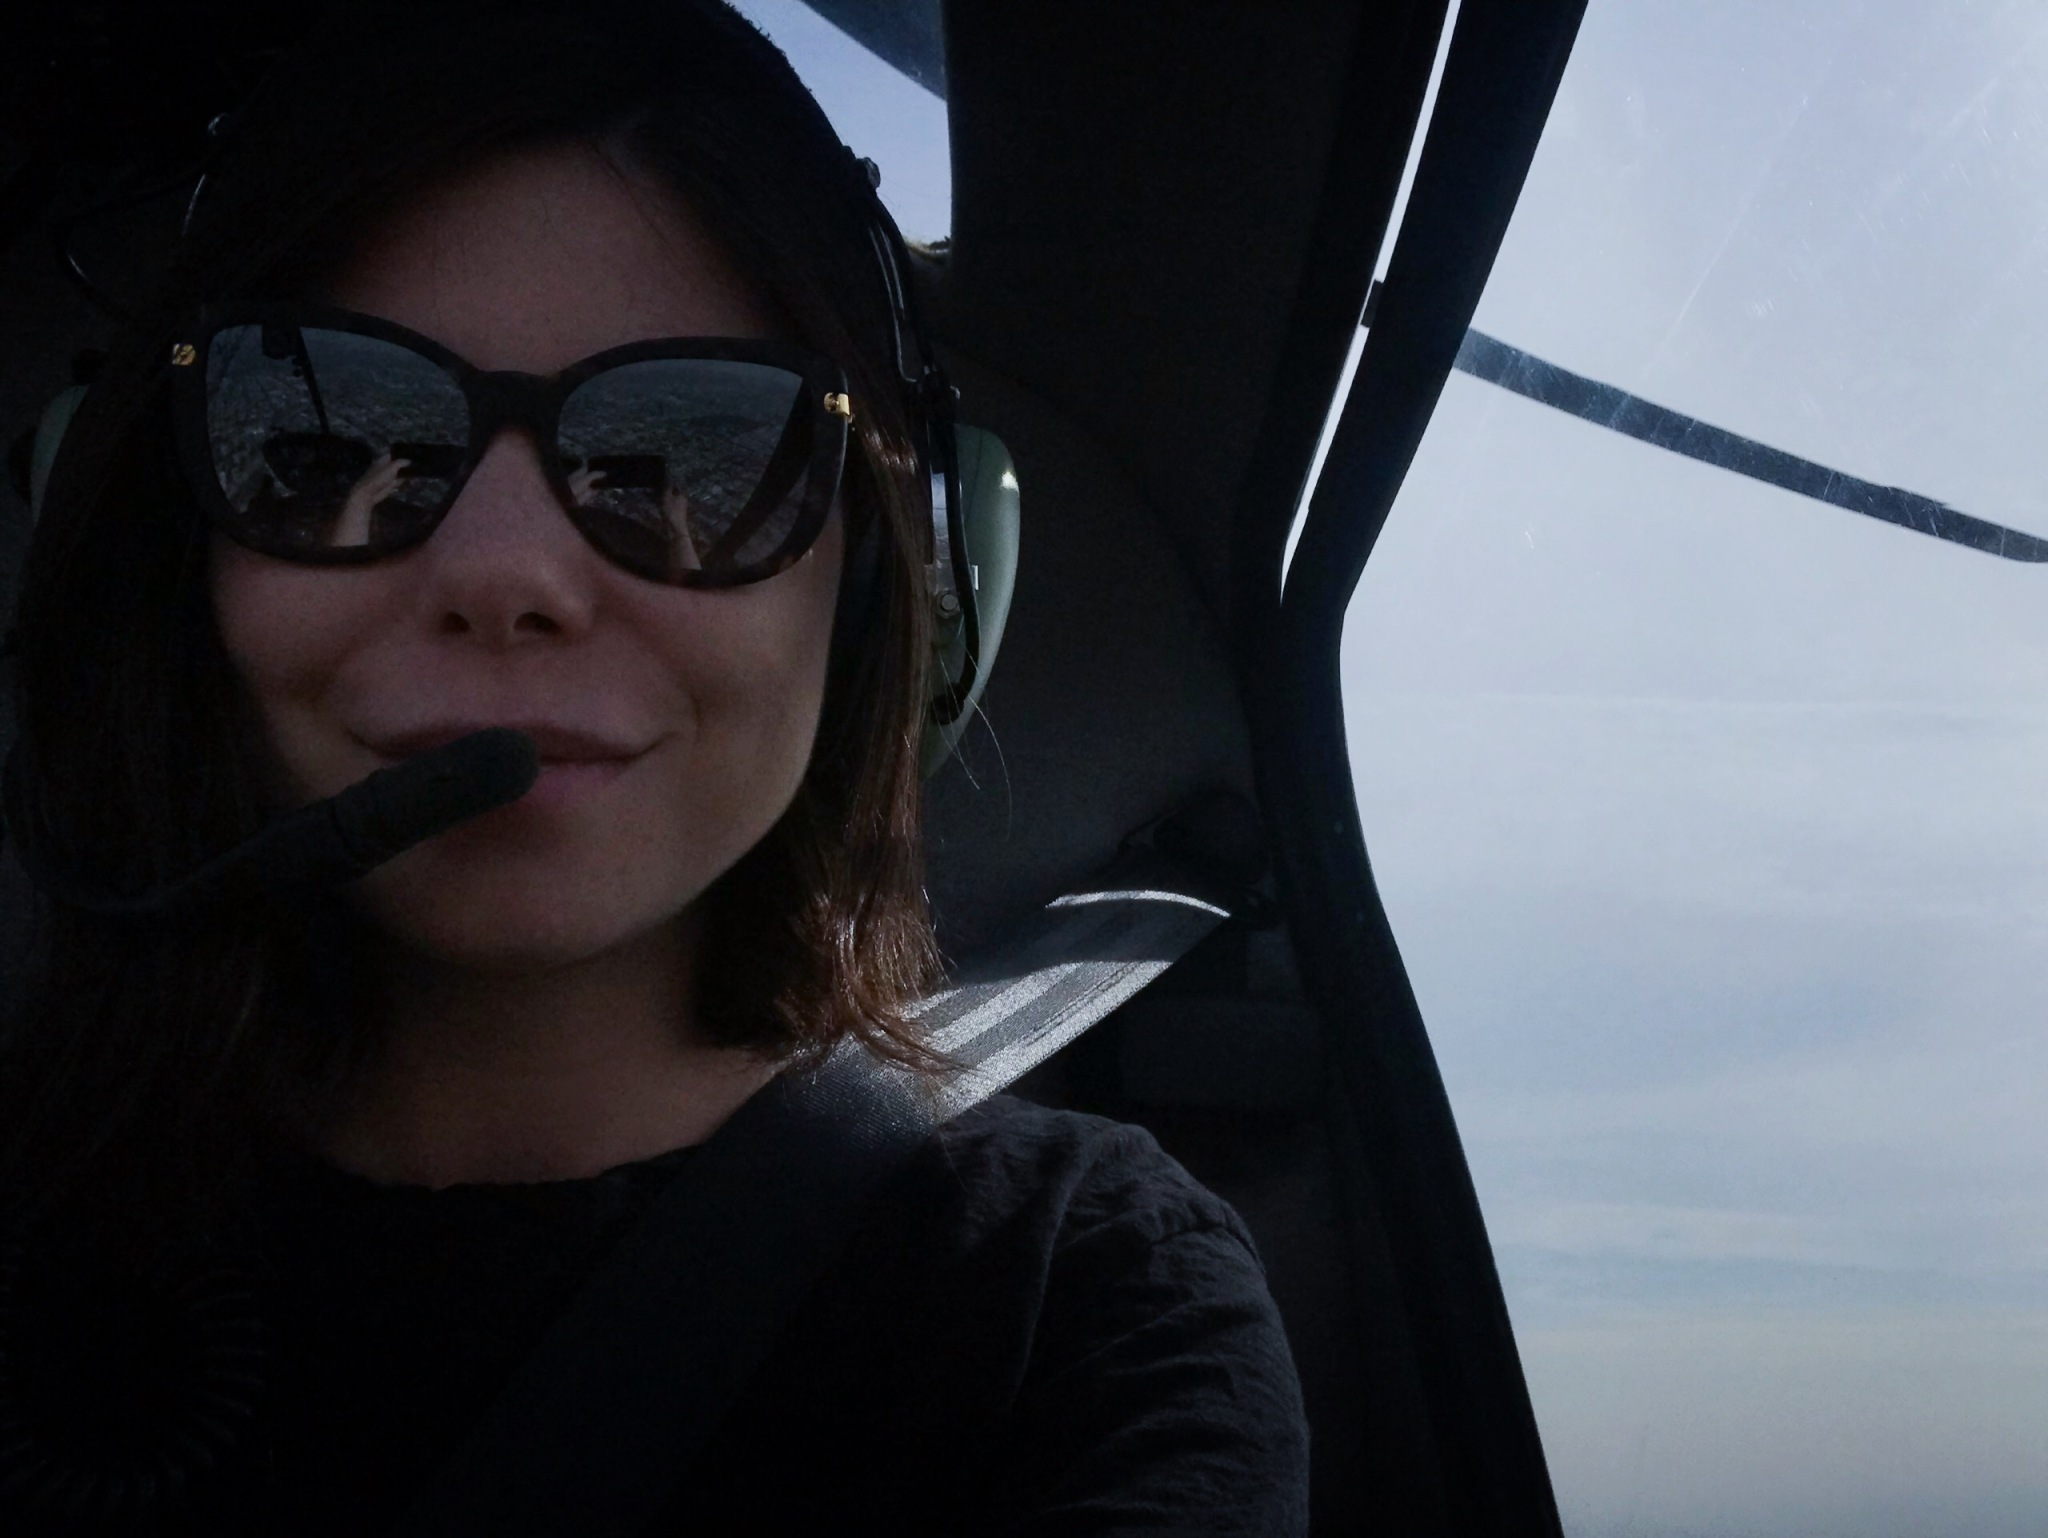 Me in helicopter